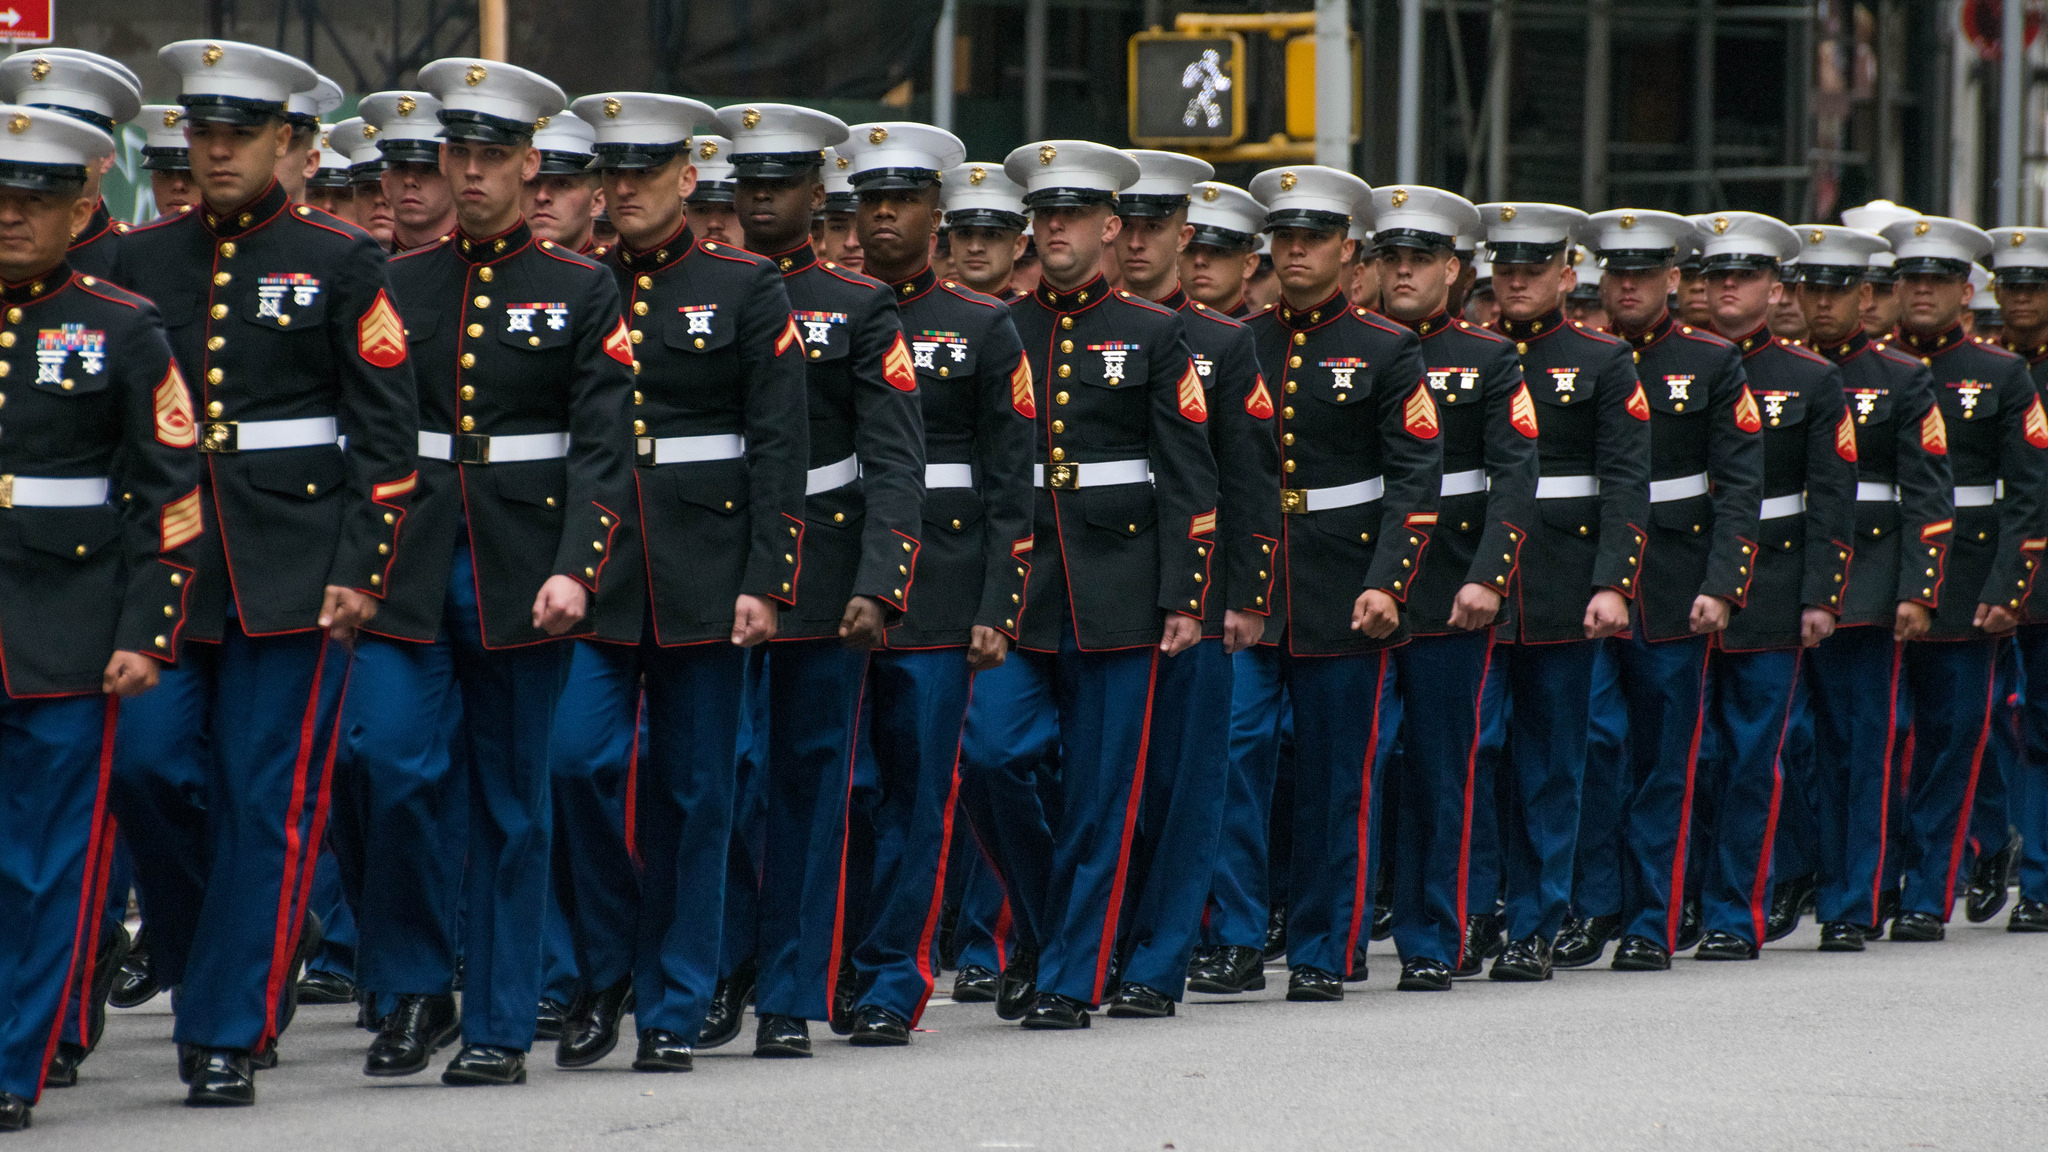 2015 Veterans Day parade in NYC